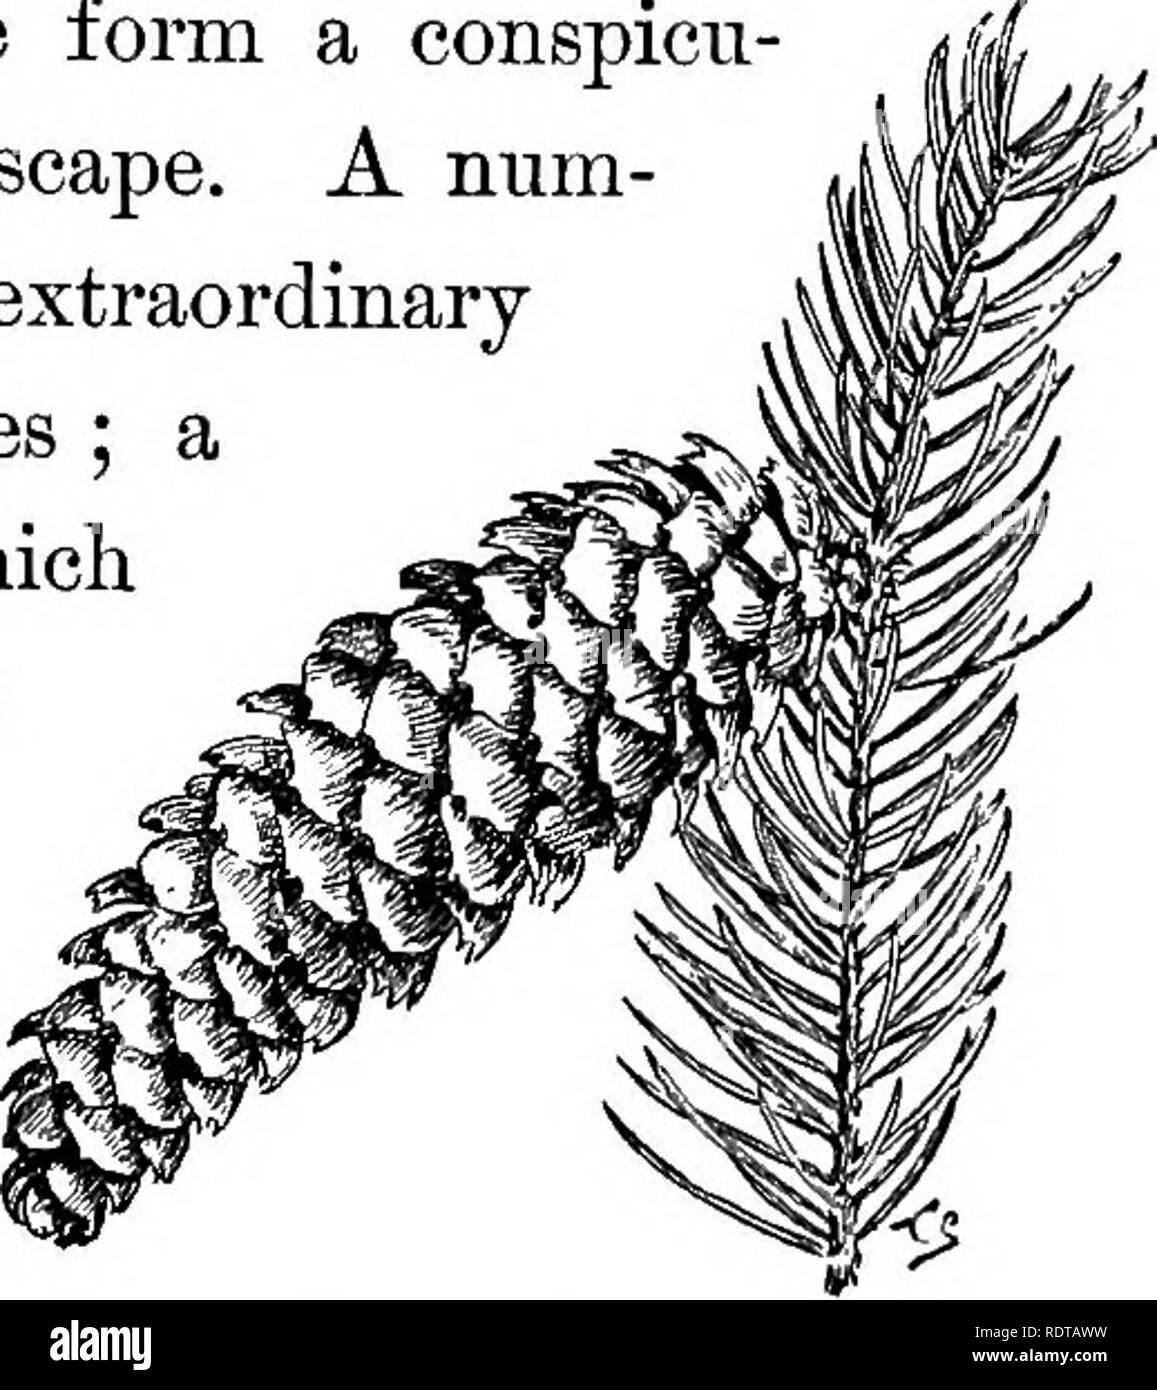 . Familiar trees and their leaves . Trees. THE SPRUCE, ETC. 291 Norway Spruce. The Norway spruce is another hand- Picm exceUa. ^ some species, which is generally con- fined to parks and private grounds. This tree grows from 50 to 120 feet high, according to circumstances; in the forests of Norway its long, drooping branches and tall figure form a conspicu- ous feature of the landscape. A num- ber of varieties assume extraordinary if not grotesque shapes ; a certain weeping form, which may be seen in the Ar- nold Arboretum, is a most peculiar, bare- branched, snaky-look- ing character, which ca - Stock Image